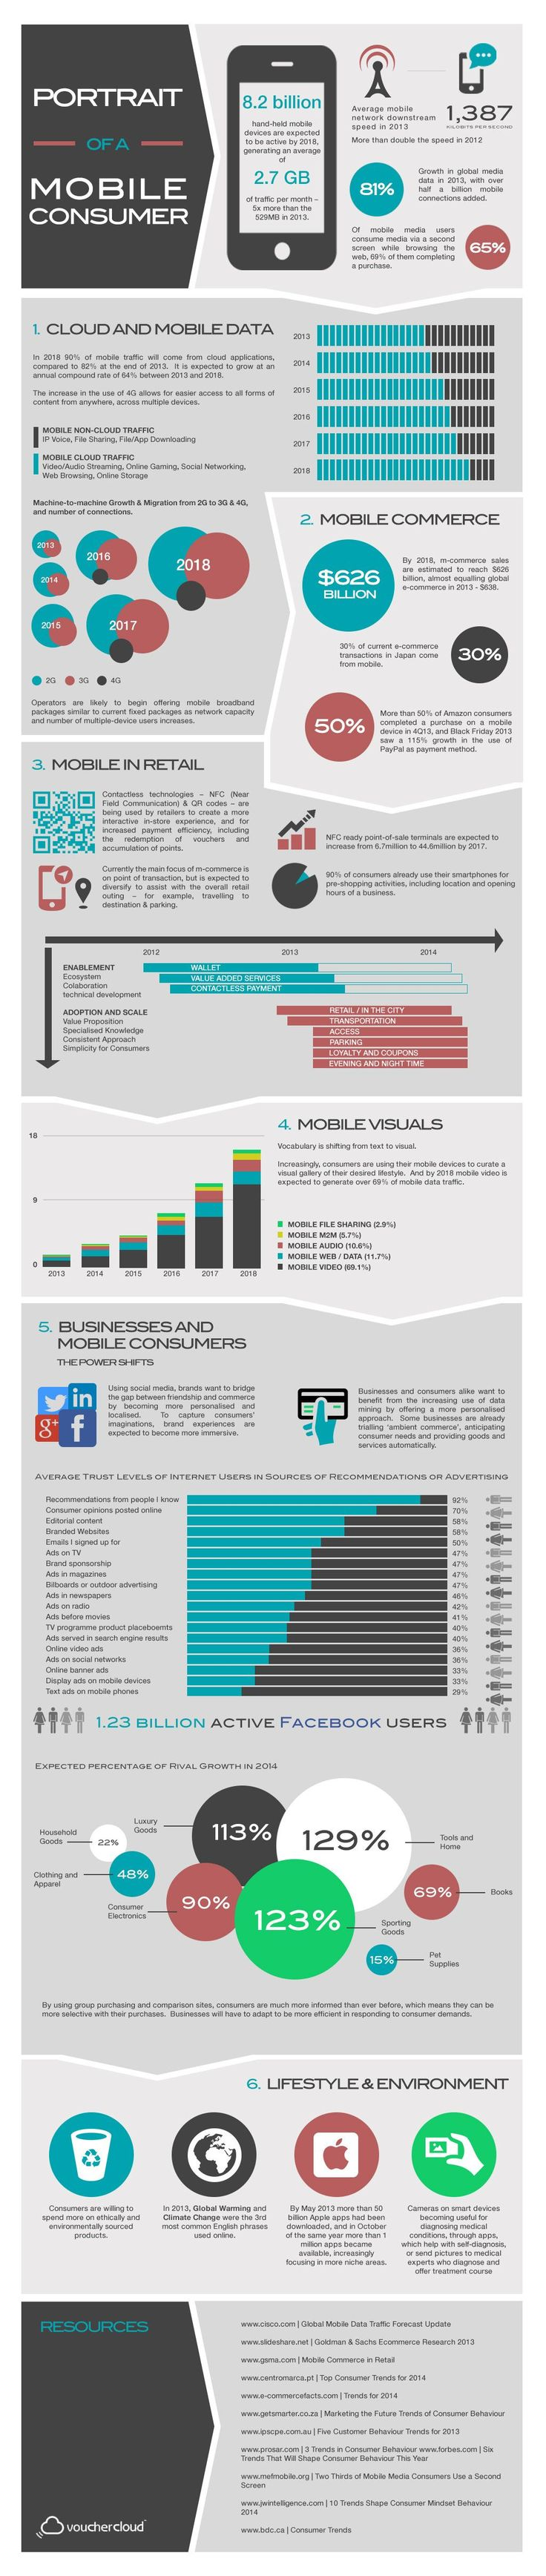 Mobile devices by 2018: $600 billion in e-commerce [infographic] #mobilemarketinginfographics